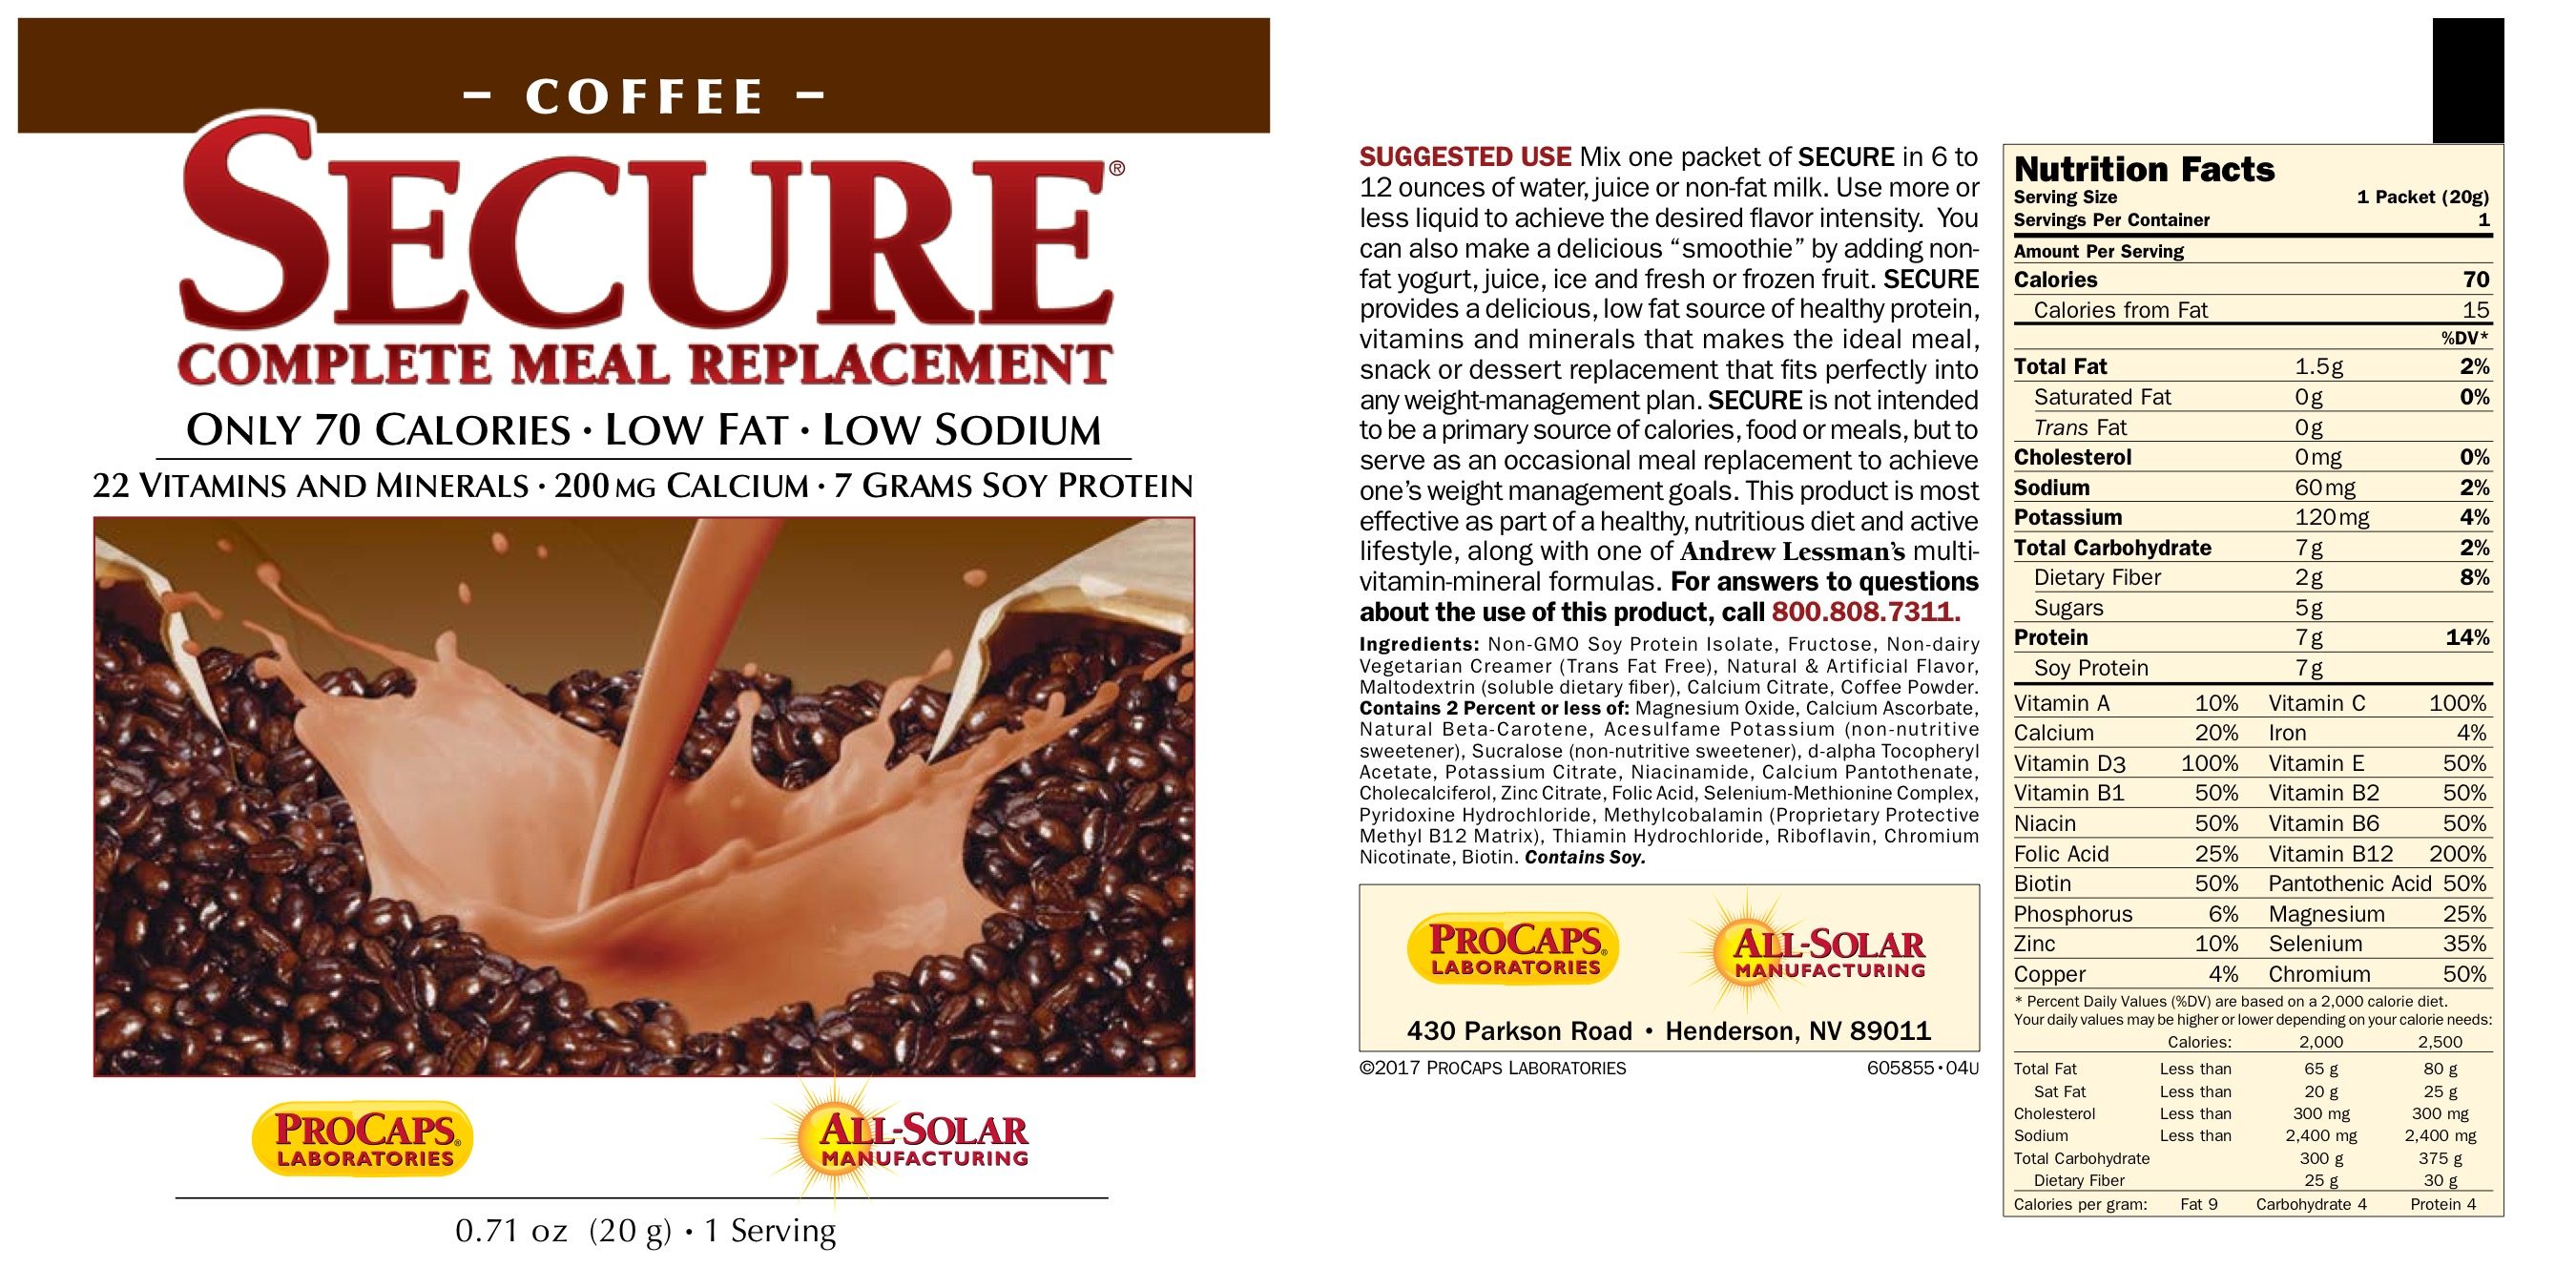 Secure-Soy-Complete-Meal-Replacement-Coffee-Packets-Weight-Management